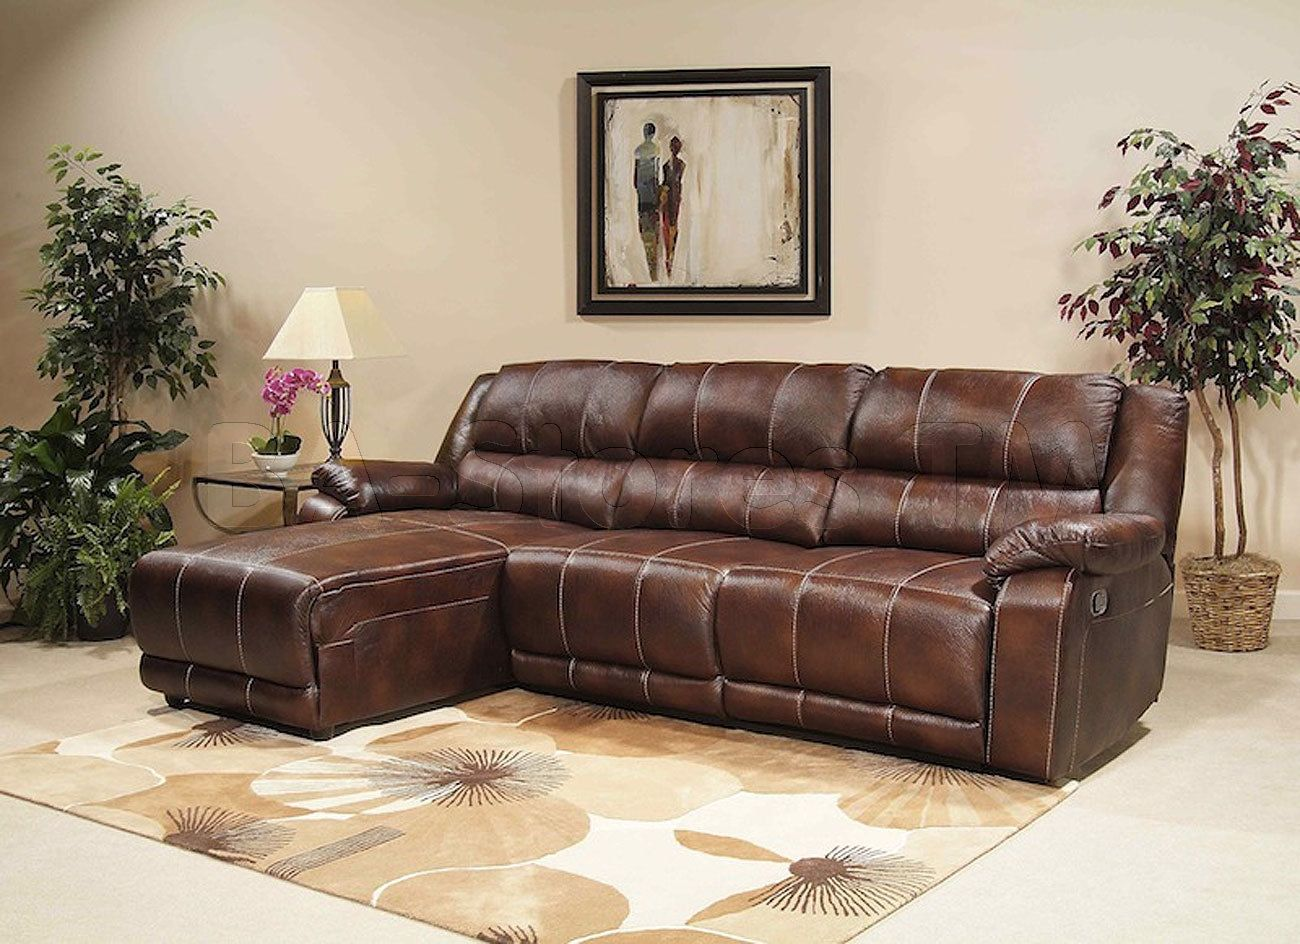 Cool Sectional Sofa With Chaise And Recliner Lovely Sectional Sofa With Chaise And Recliner 49 For You Sectional Sofa With Chaise Sectional Sofa With Recliner